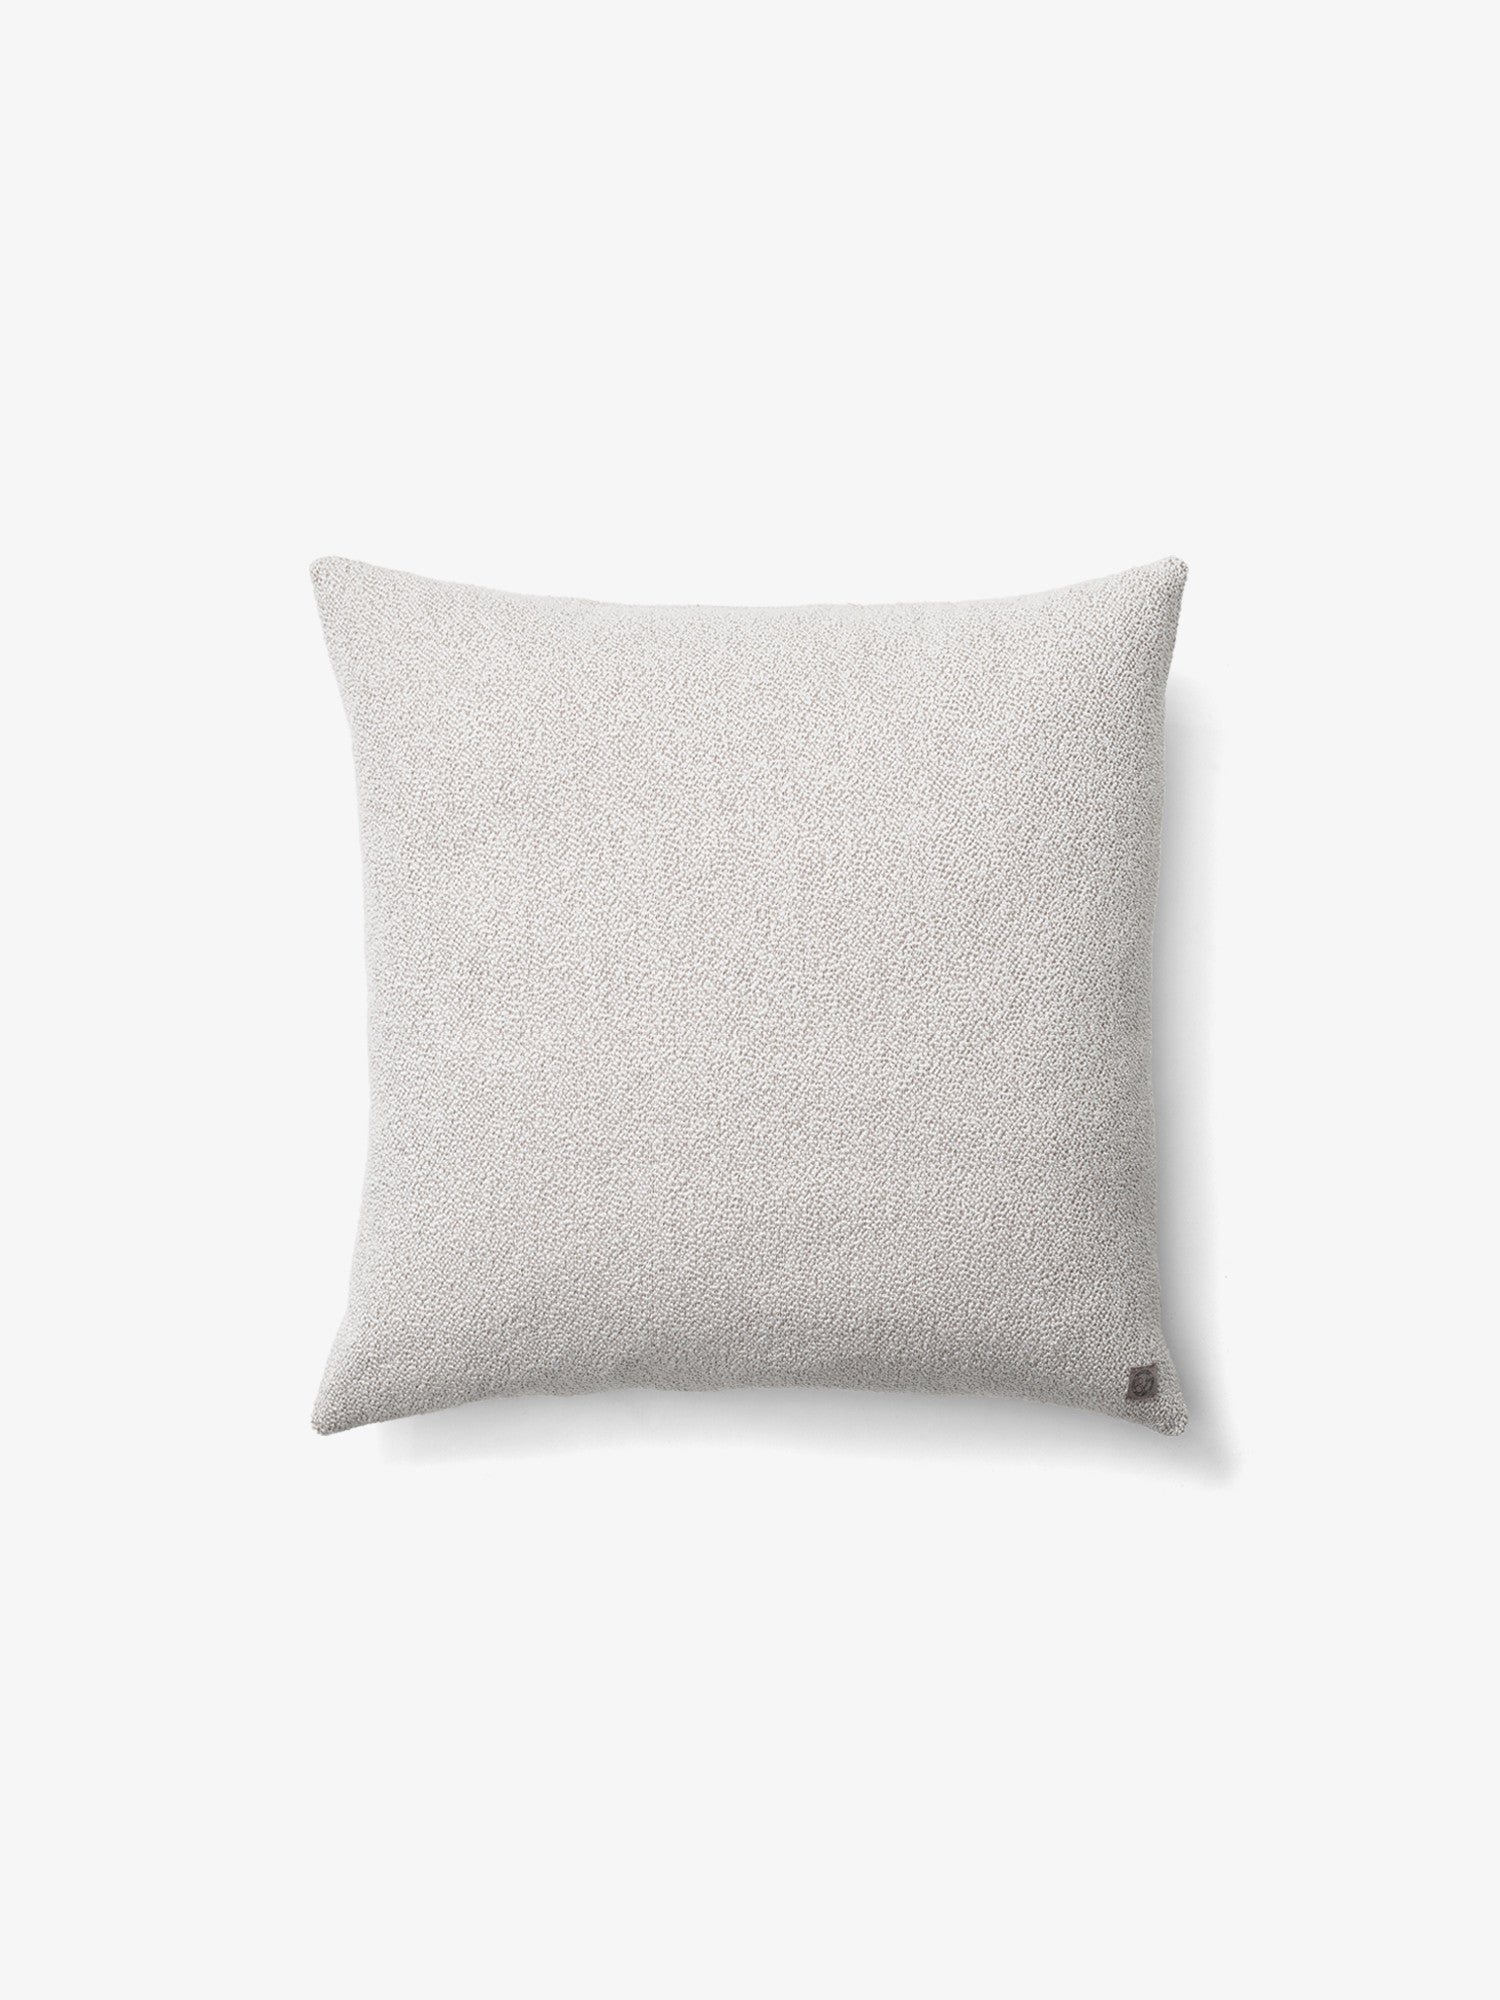 Collect Pillow 65x65cm - Boucle